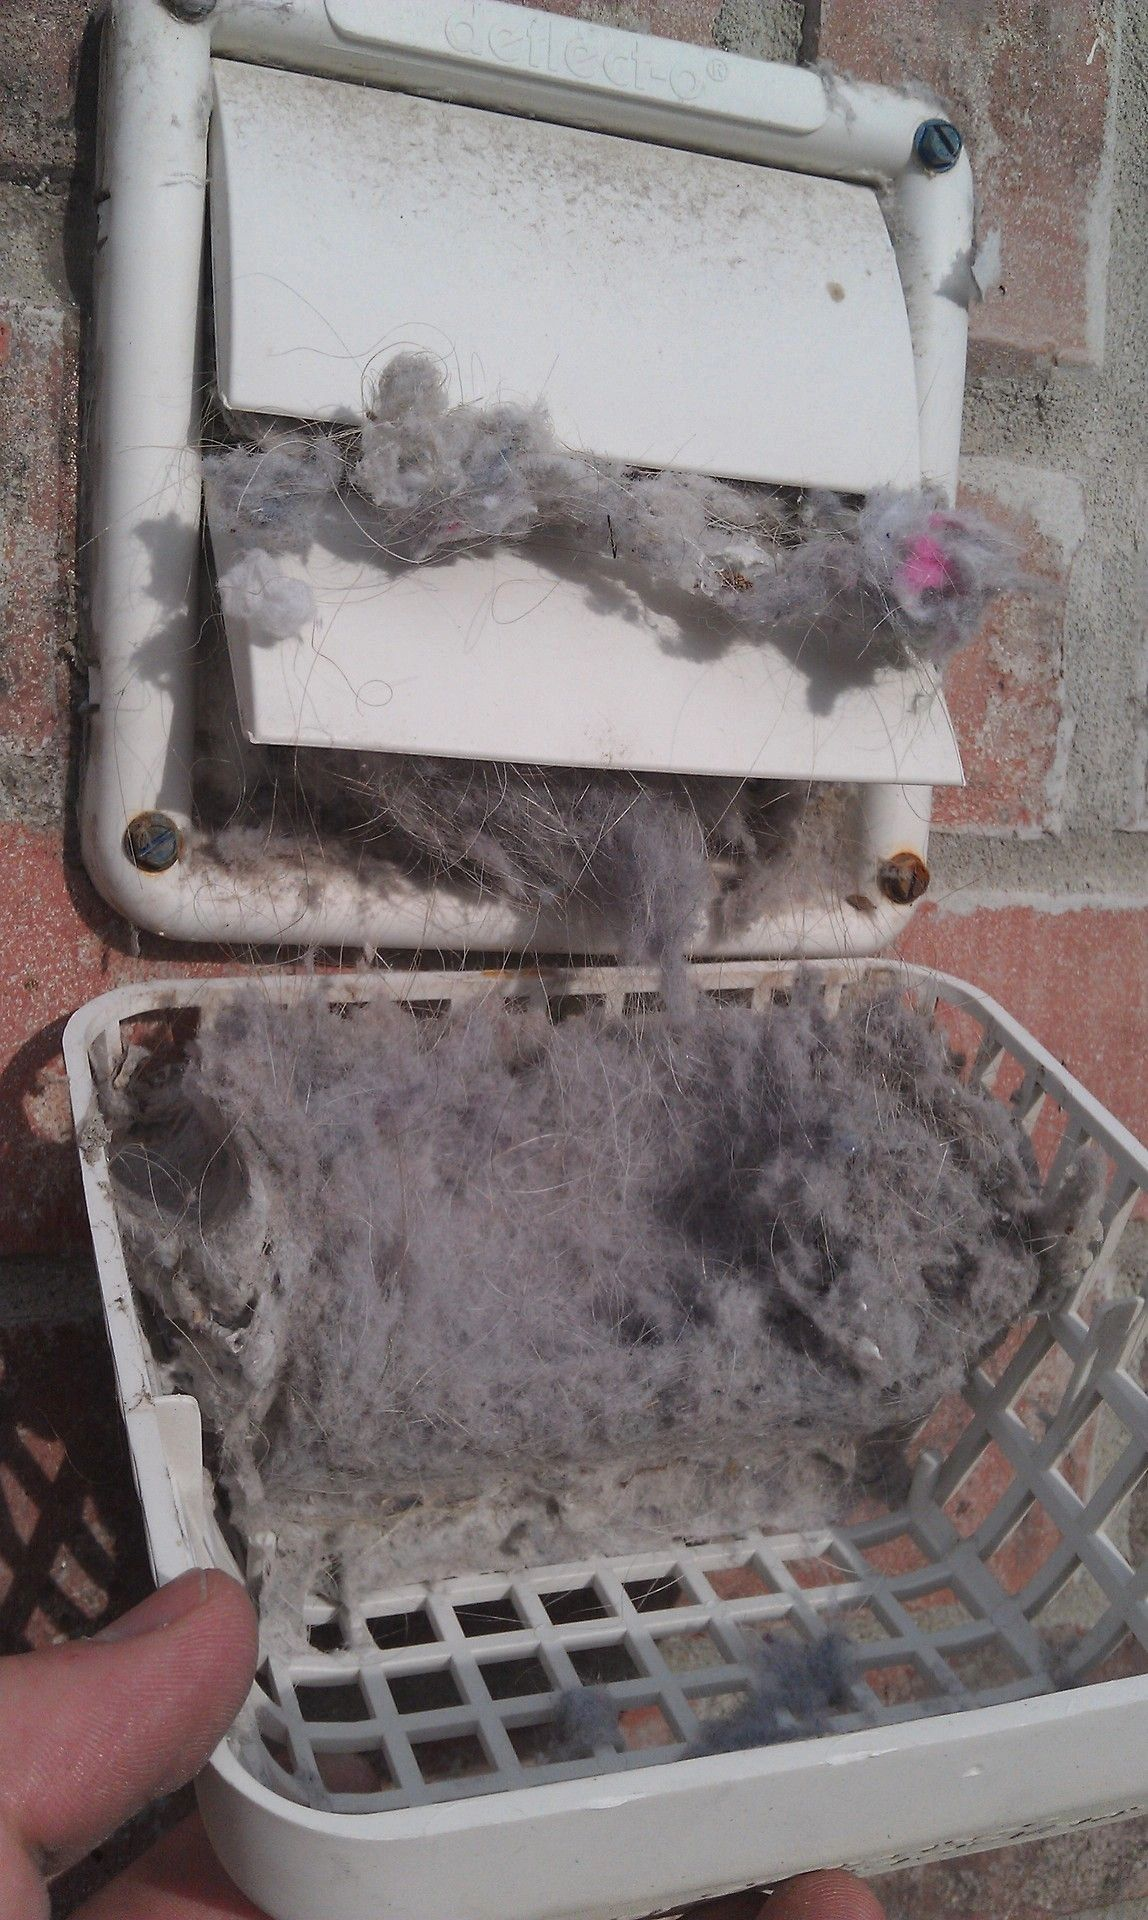 Dryer vent and duct cleaning